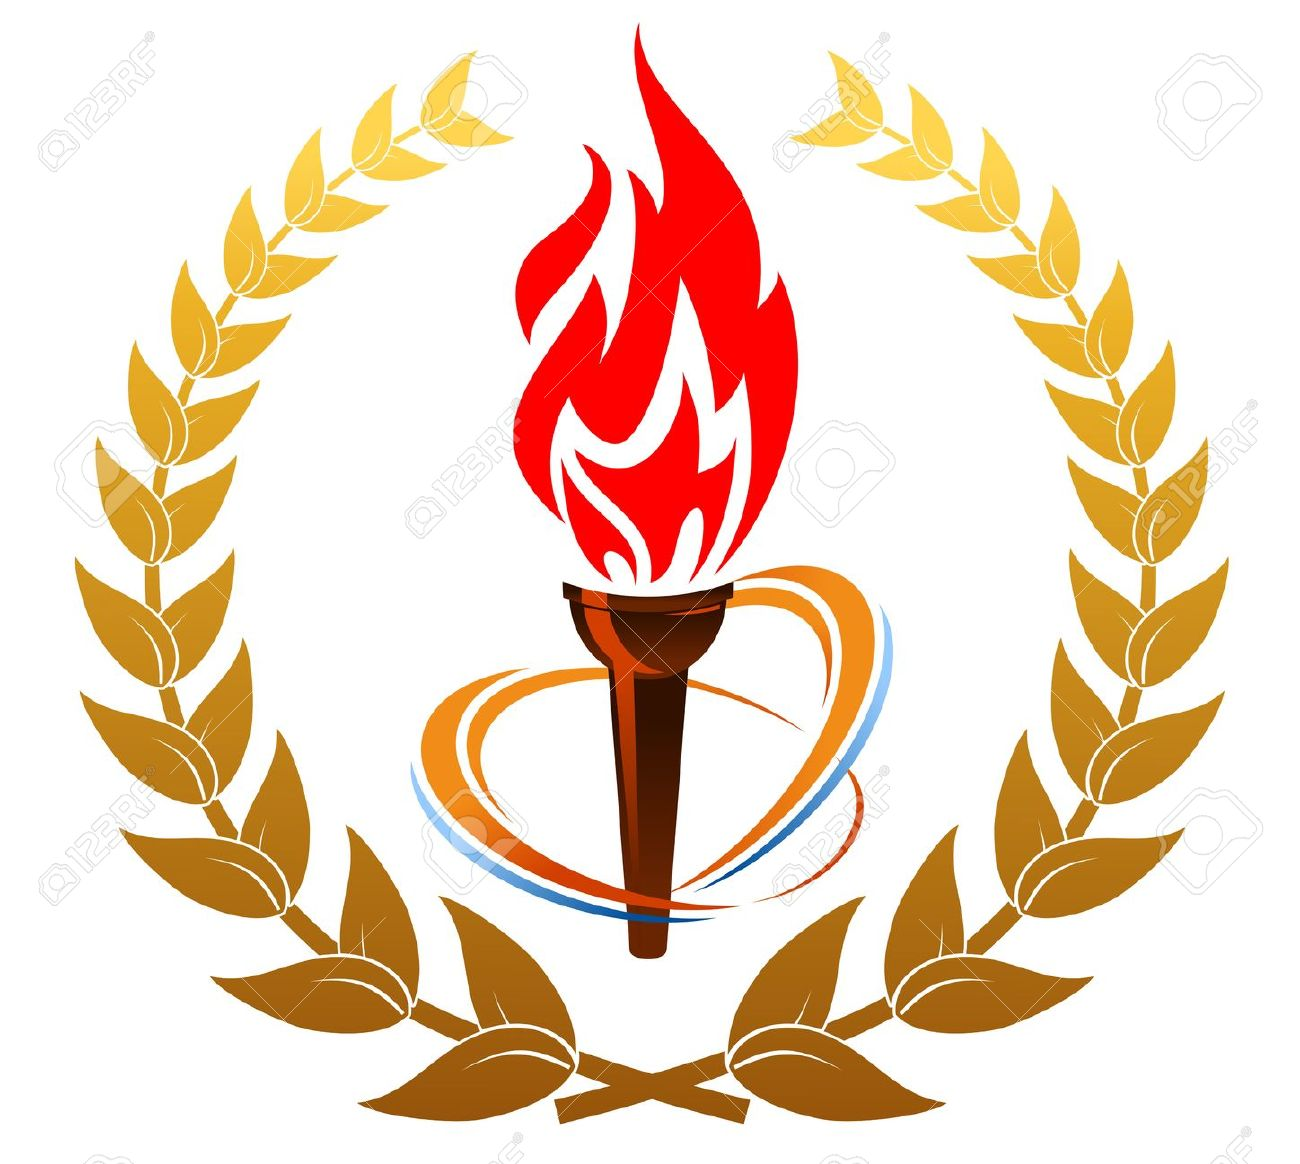 Torch clipart education Royalty Fire Fire Free Vector